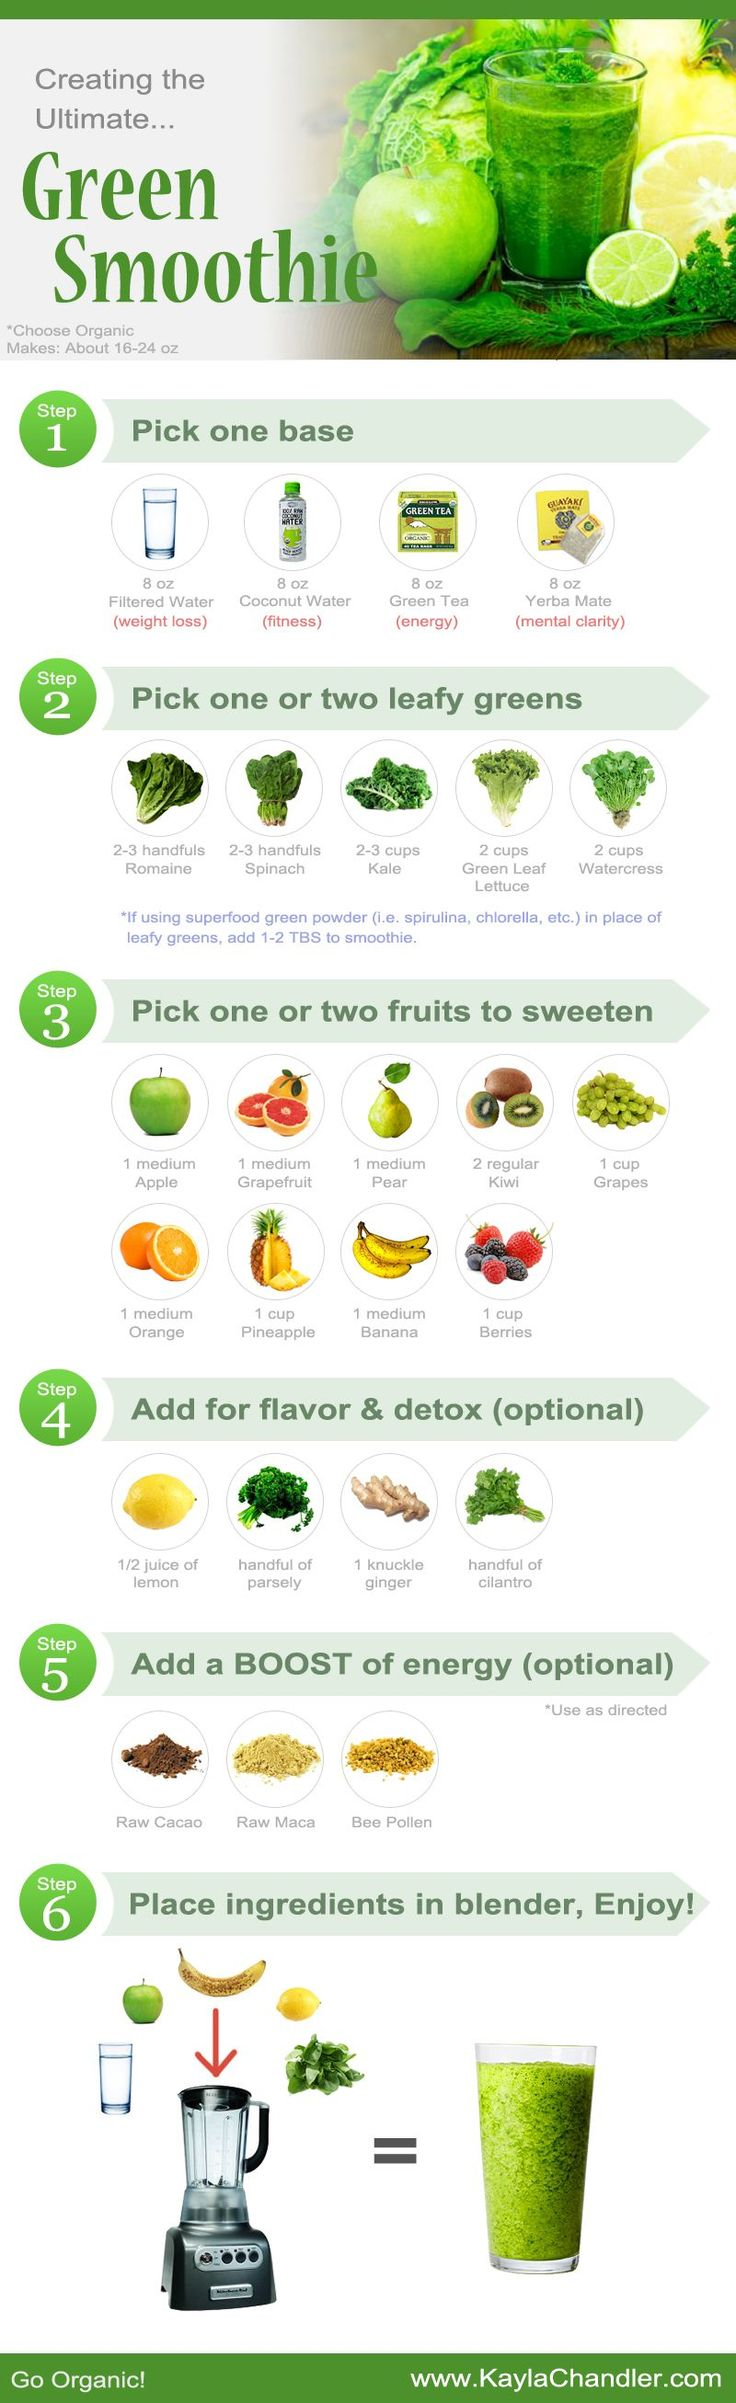 According to Kayla Chandler, this guide to make Green Smoothies will be goog for your health, weight loss, and energy!